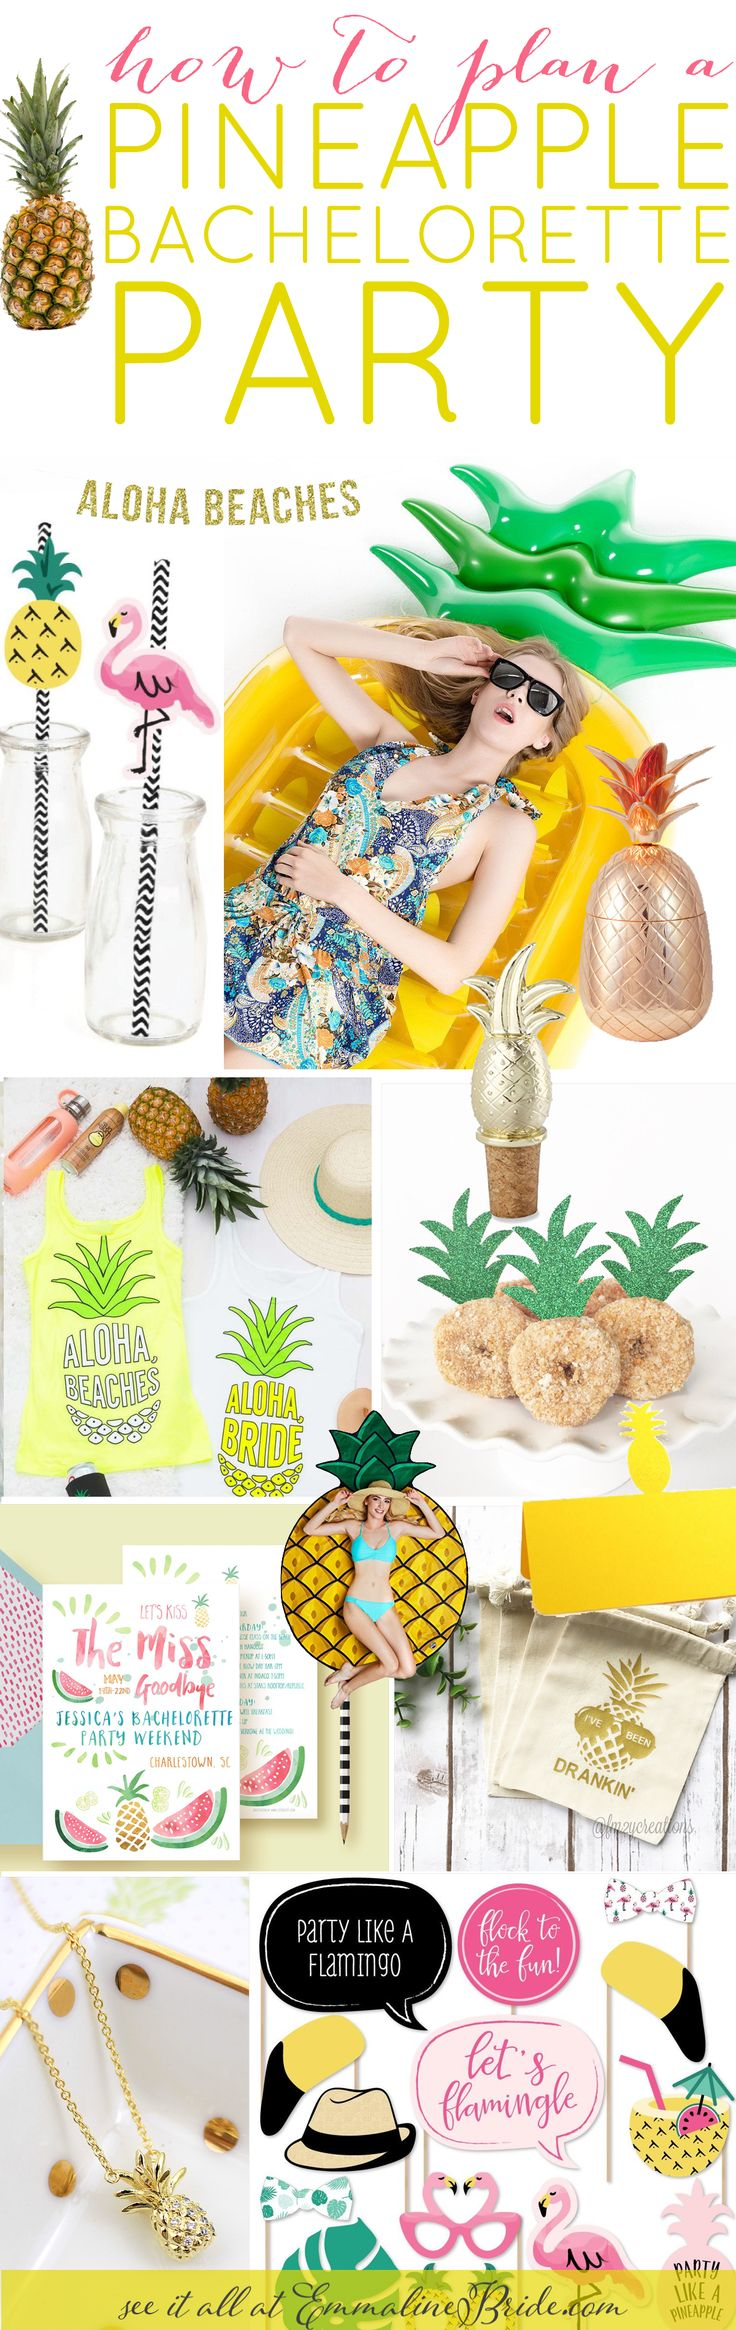 How to Plan an Awesome Pineapple Themed Bachelorette Party | http://emmalinebride.com/bachelorette/pineapple-bachelorette-party-ideas/